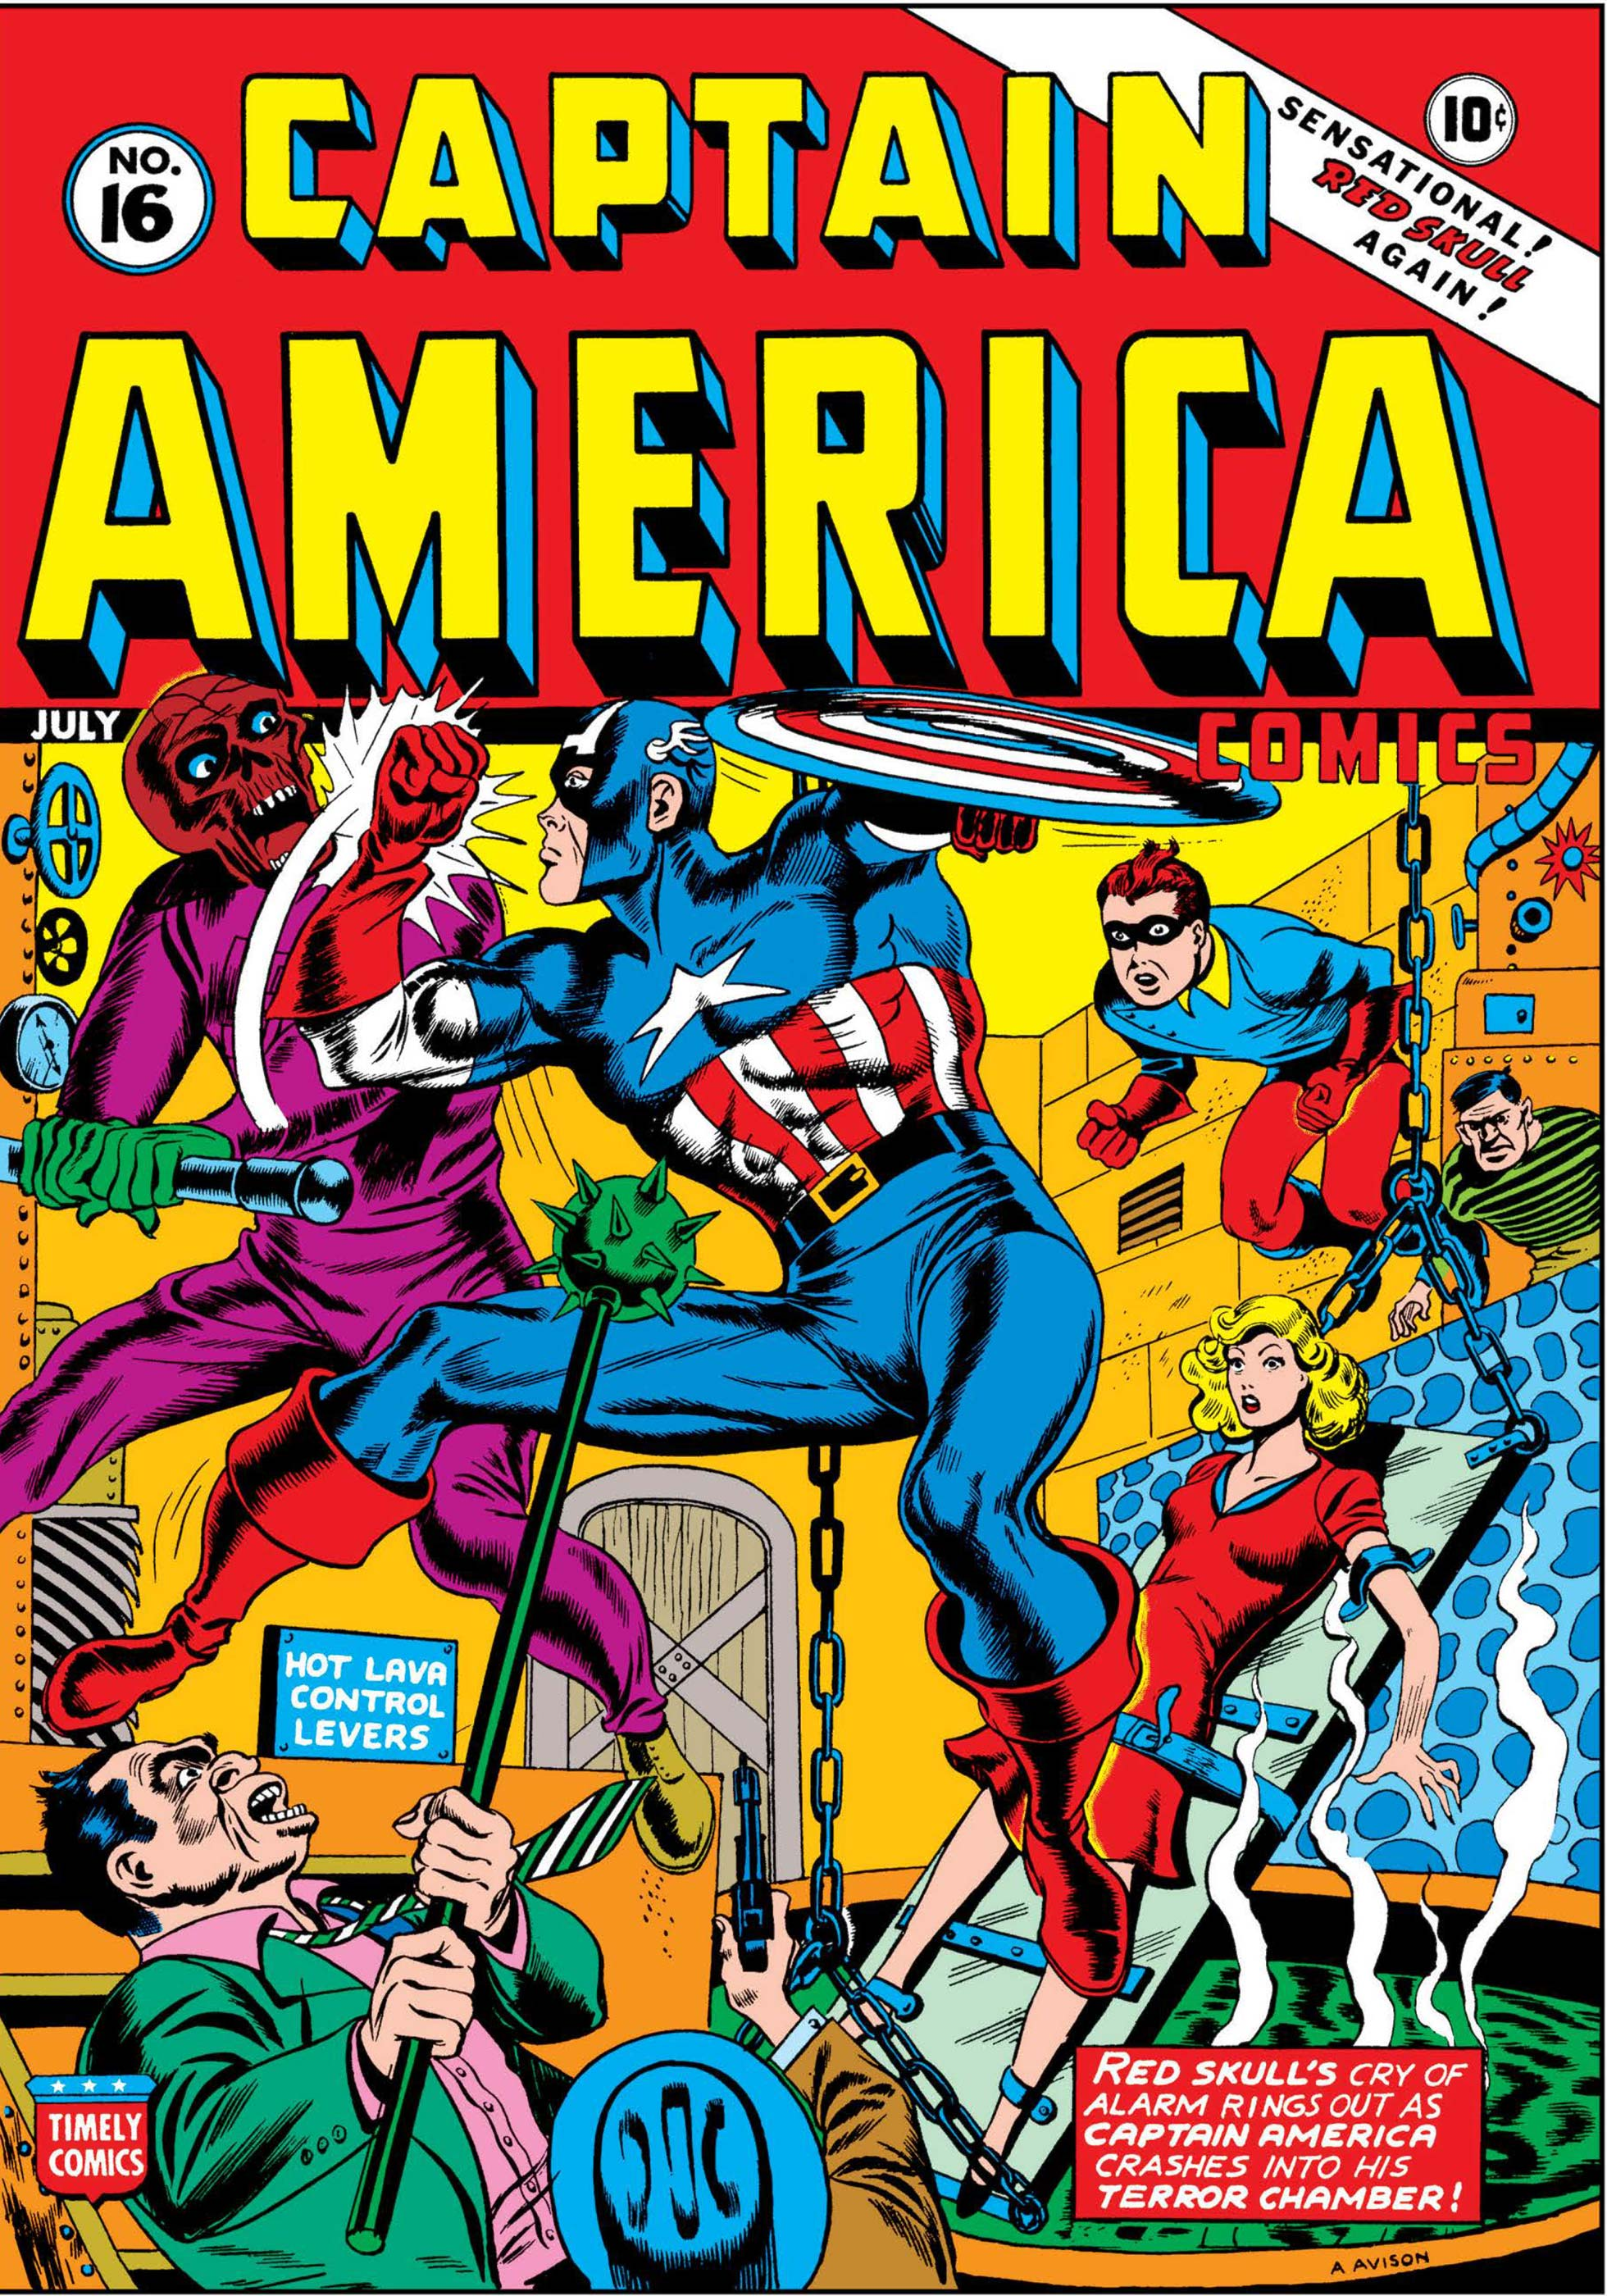 Captain America Comics (1941) #16